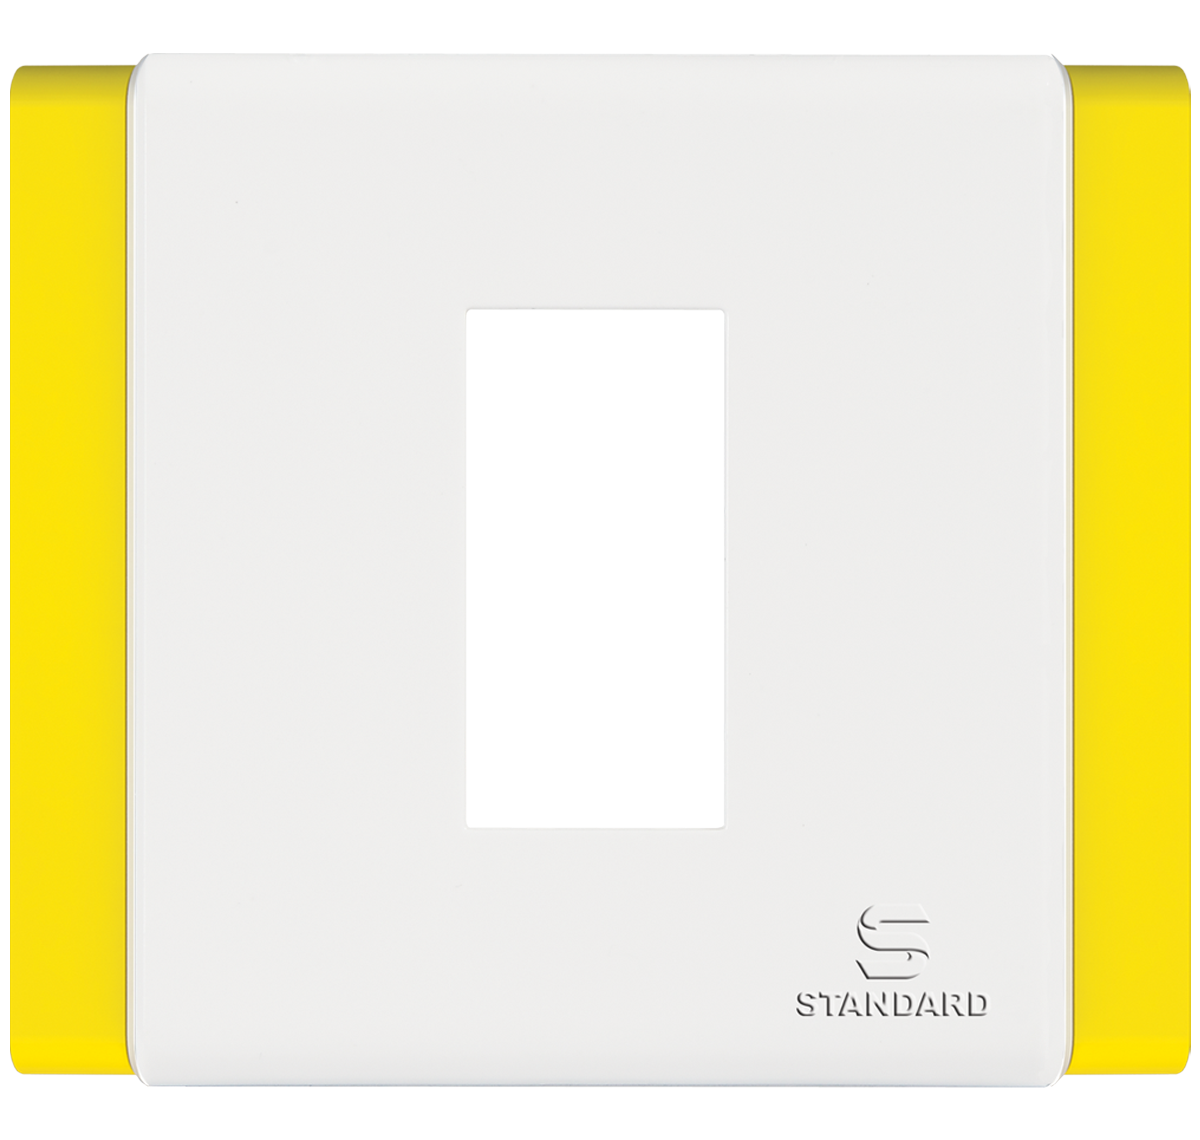 Standard - 1-m-lemon-yellow-cover-plate